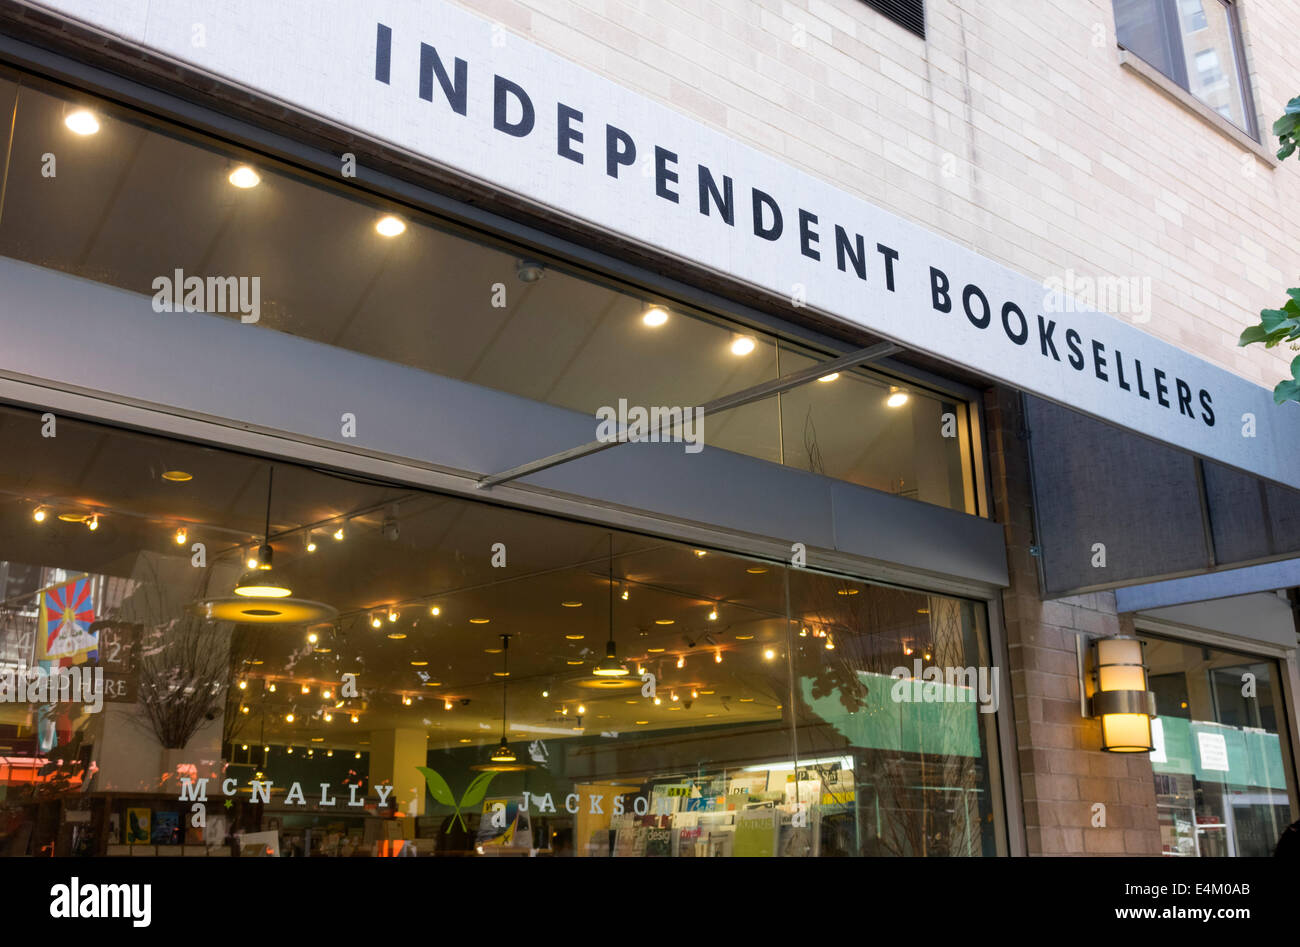 An Independent Booksellers store in Nolita in New York City - Stock Image